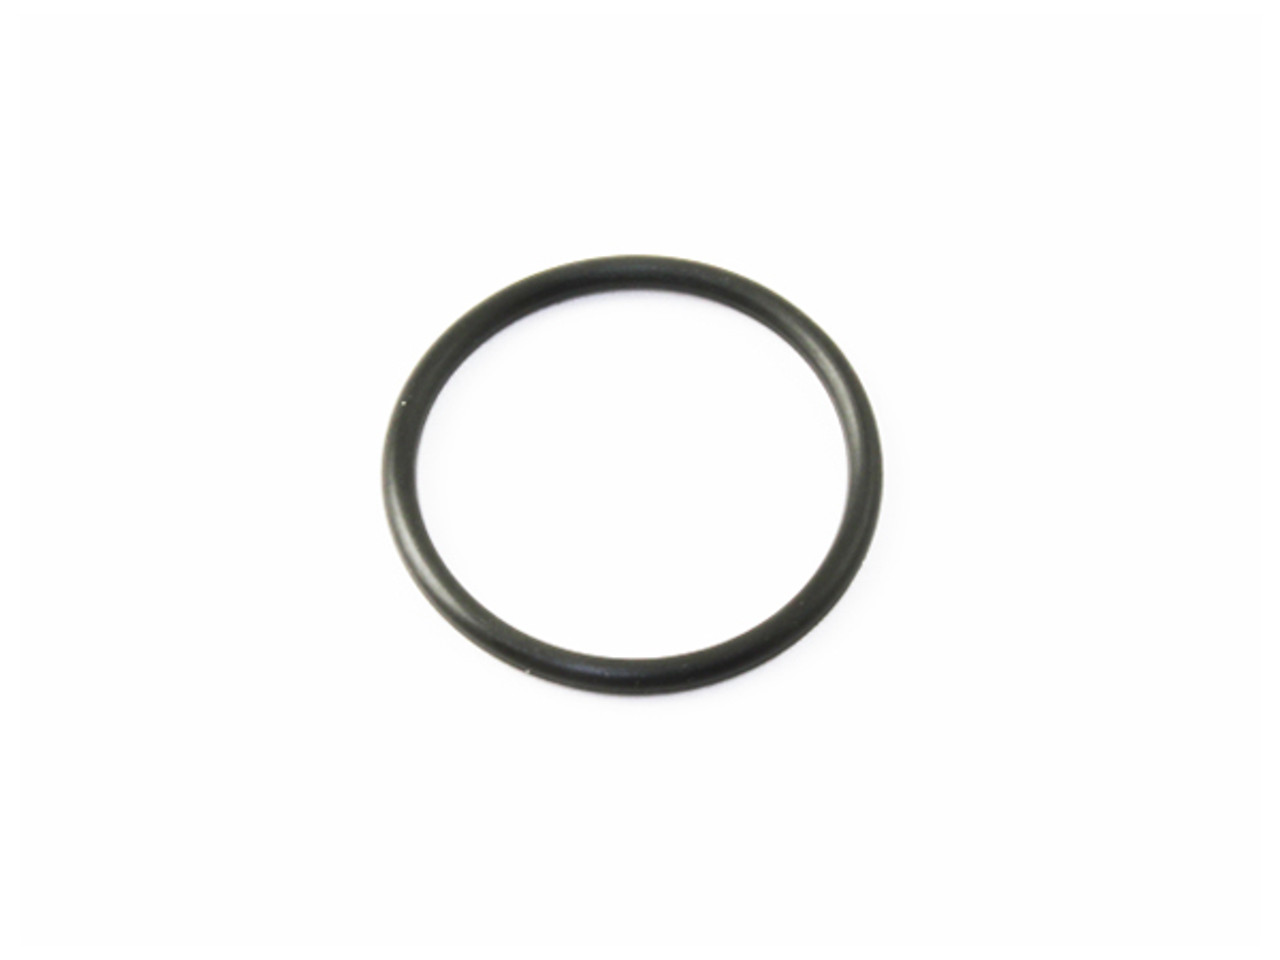 Water Pump Pipe To Cooler Seal, LB7/LY/LBZ/LMM/LML, 2001-2016 Duramax